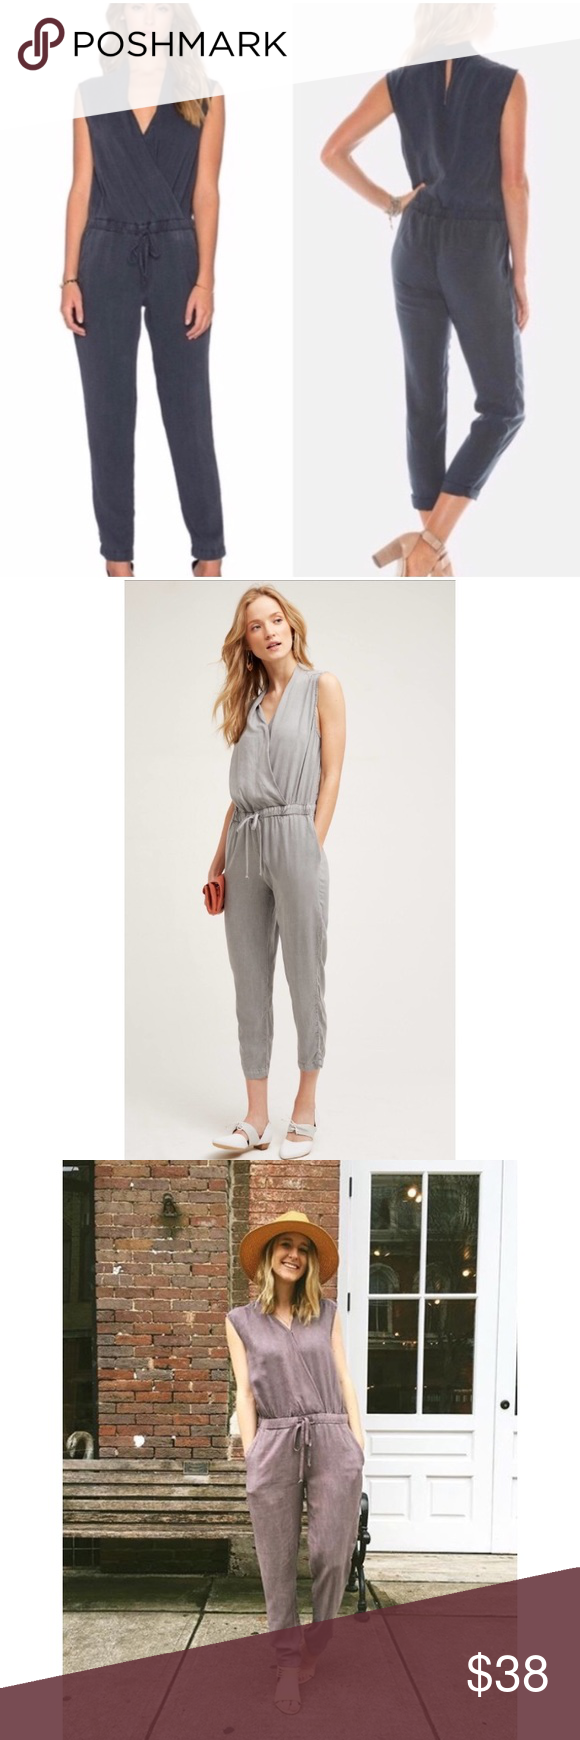 93bf7598948 Anthropologie Cloth   Stone Mignon Jumpsuit M Purchased from Anthropologie  and worn twice! This is a great piece but I have to make room in my tiny  closet.